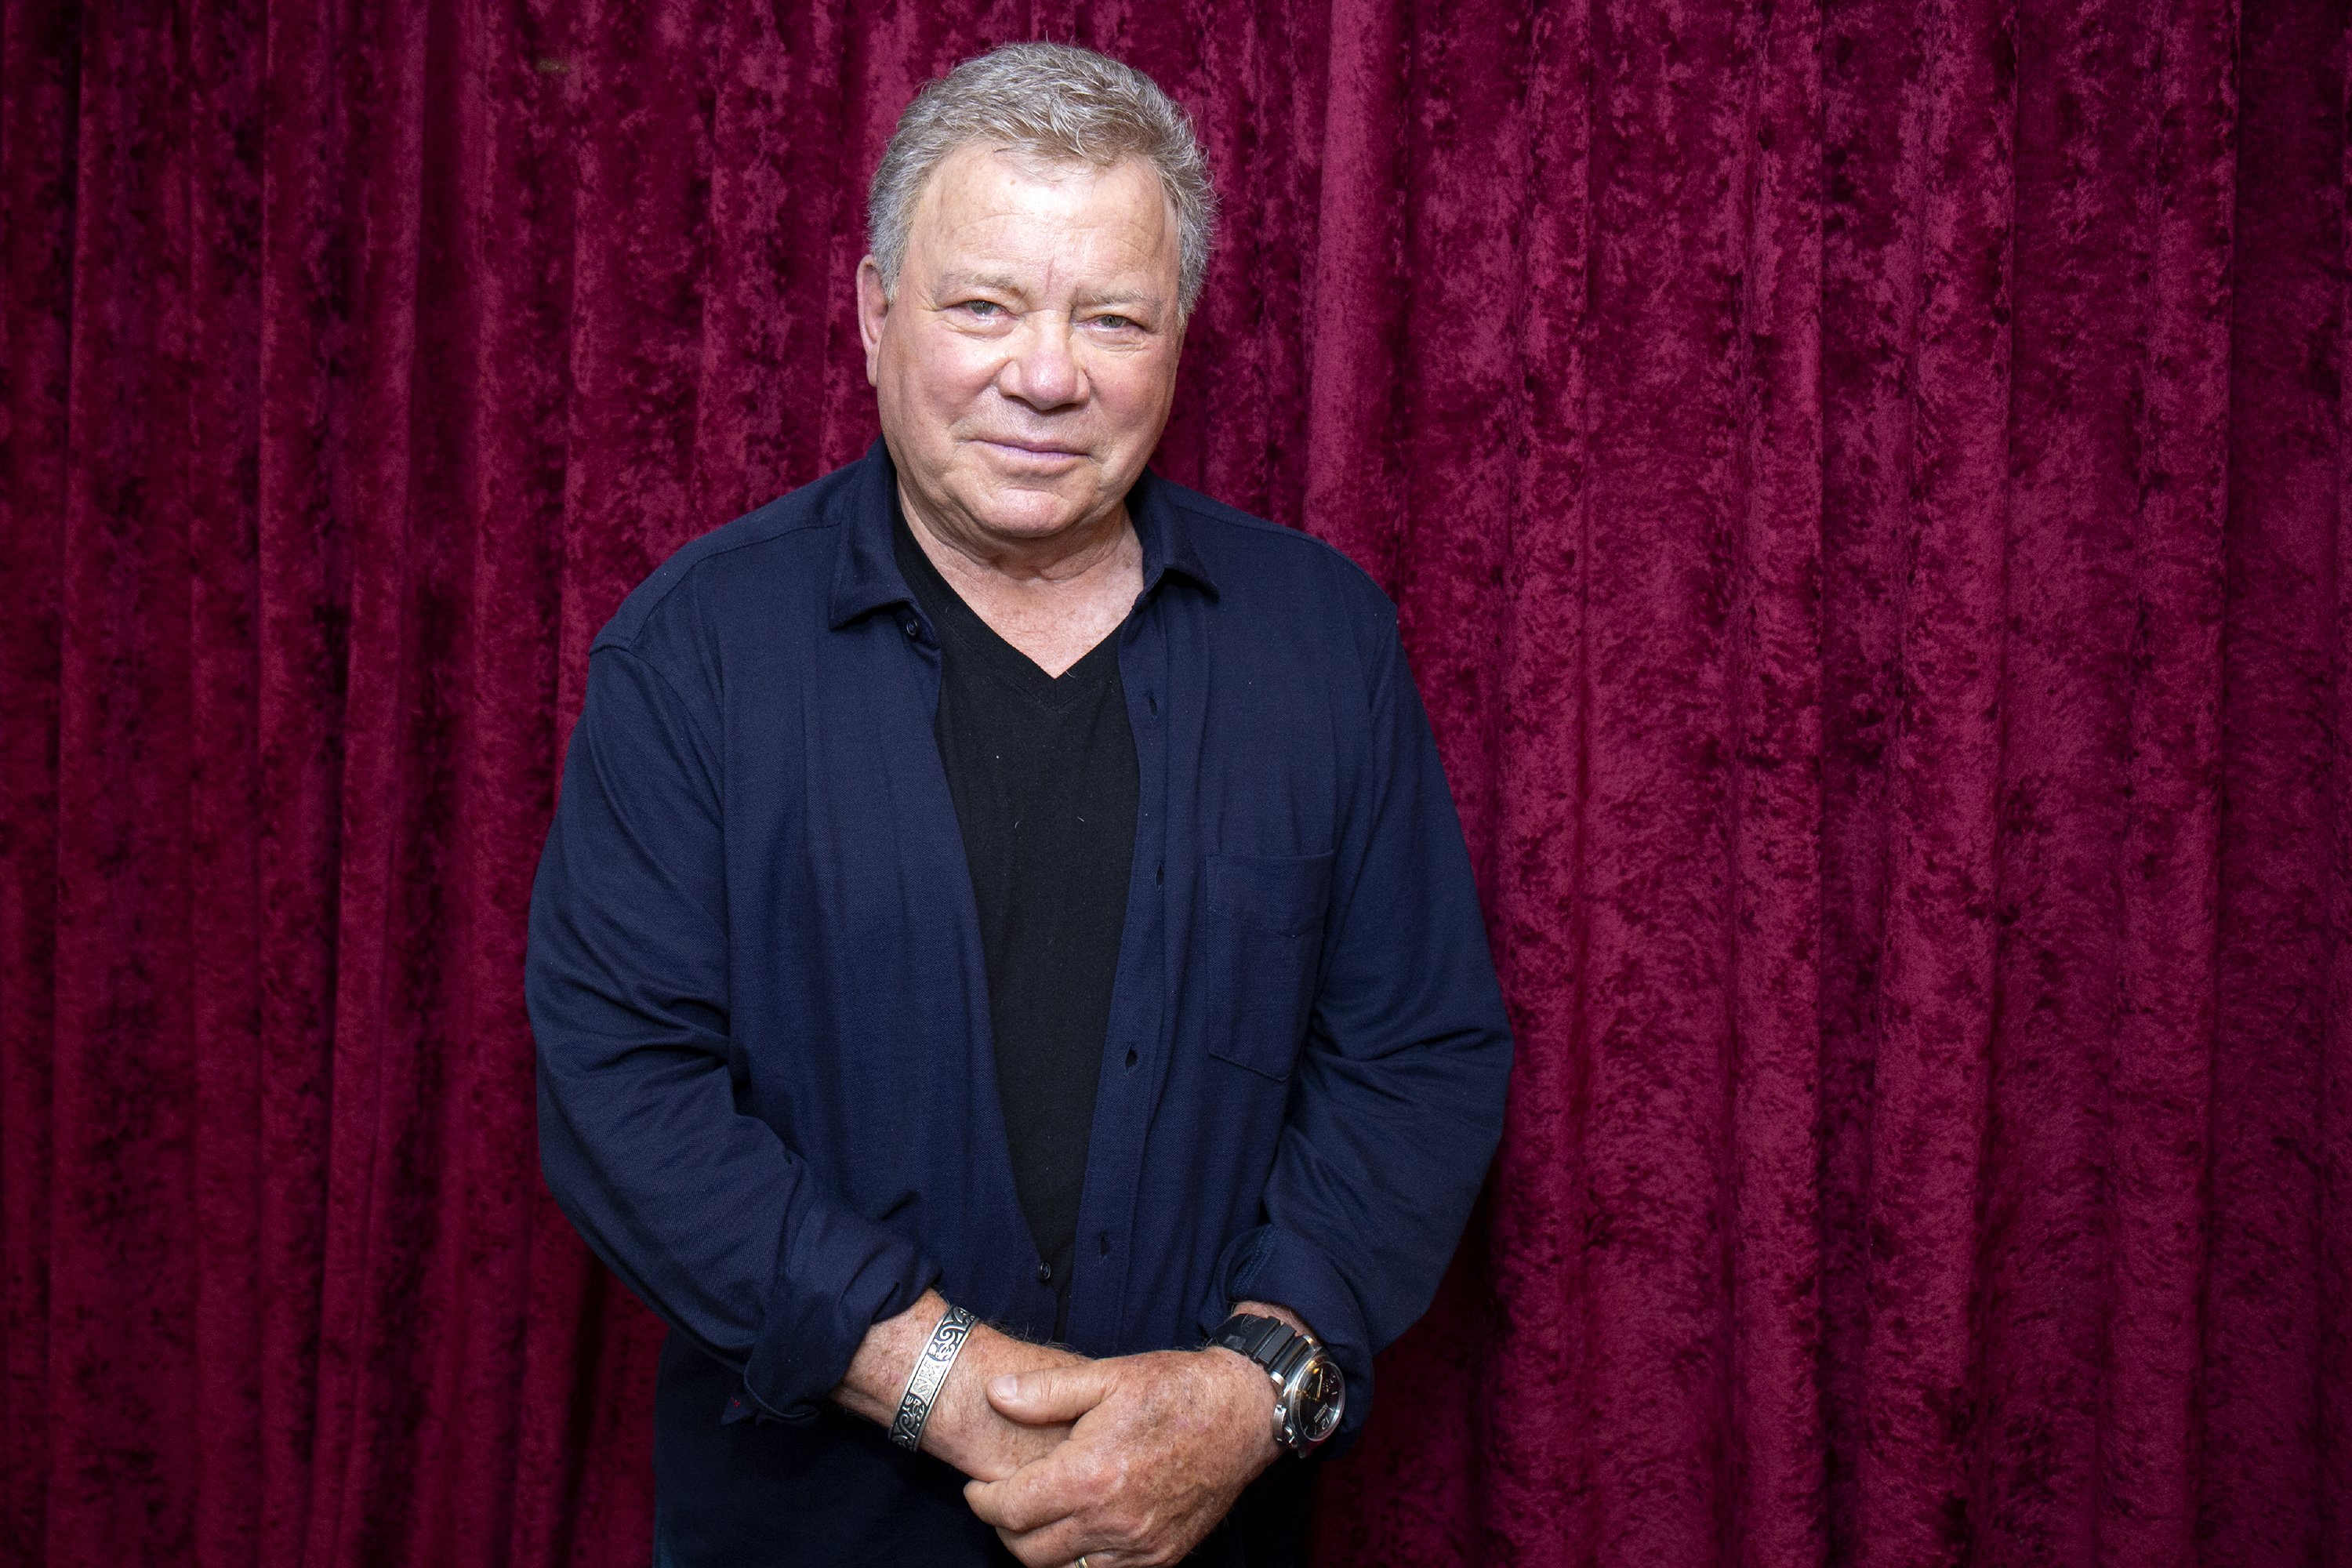 William Shatner visits SiriusXM Studios on September 6, 2018 in New York City | Photo: GettyImages